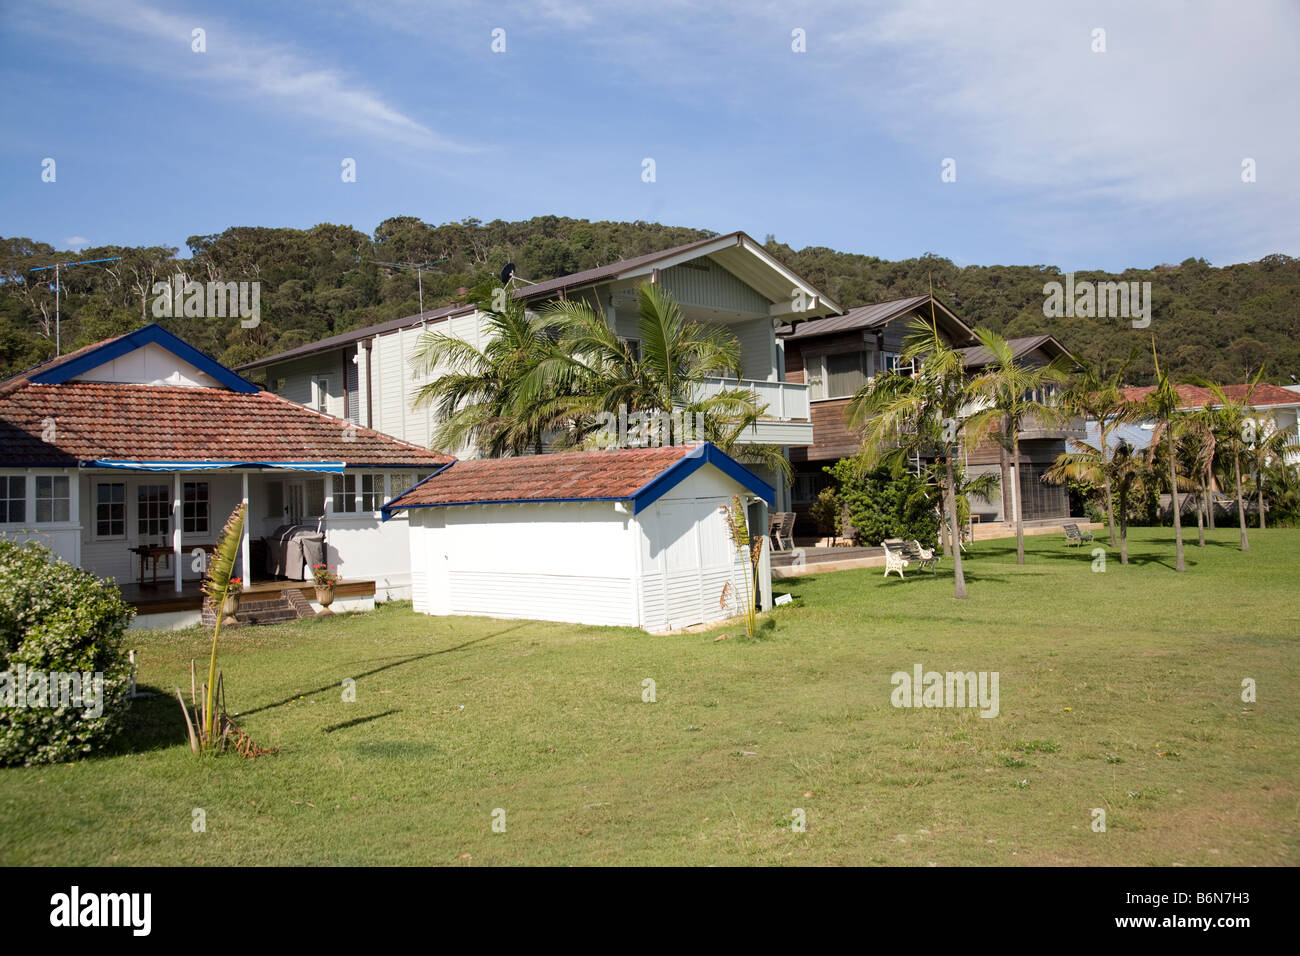 expensive detached family houses and traditional beach style properties in sydney's expensive property area - Stock Image